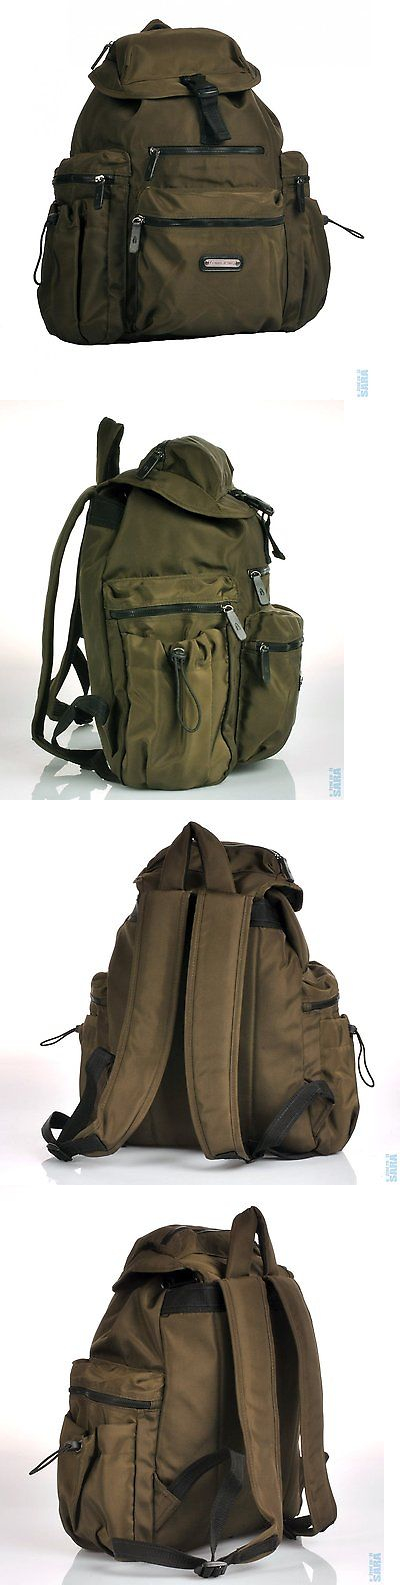 2e92f41c83b Mixed Items and Lots 175627: Camel Active Travel Bag Backpack Schwarz Khaki  Brand New -> BUY IT NOW ONLY: $48 on eBay!